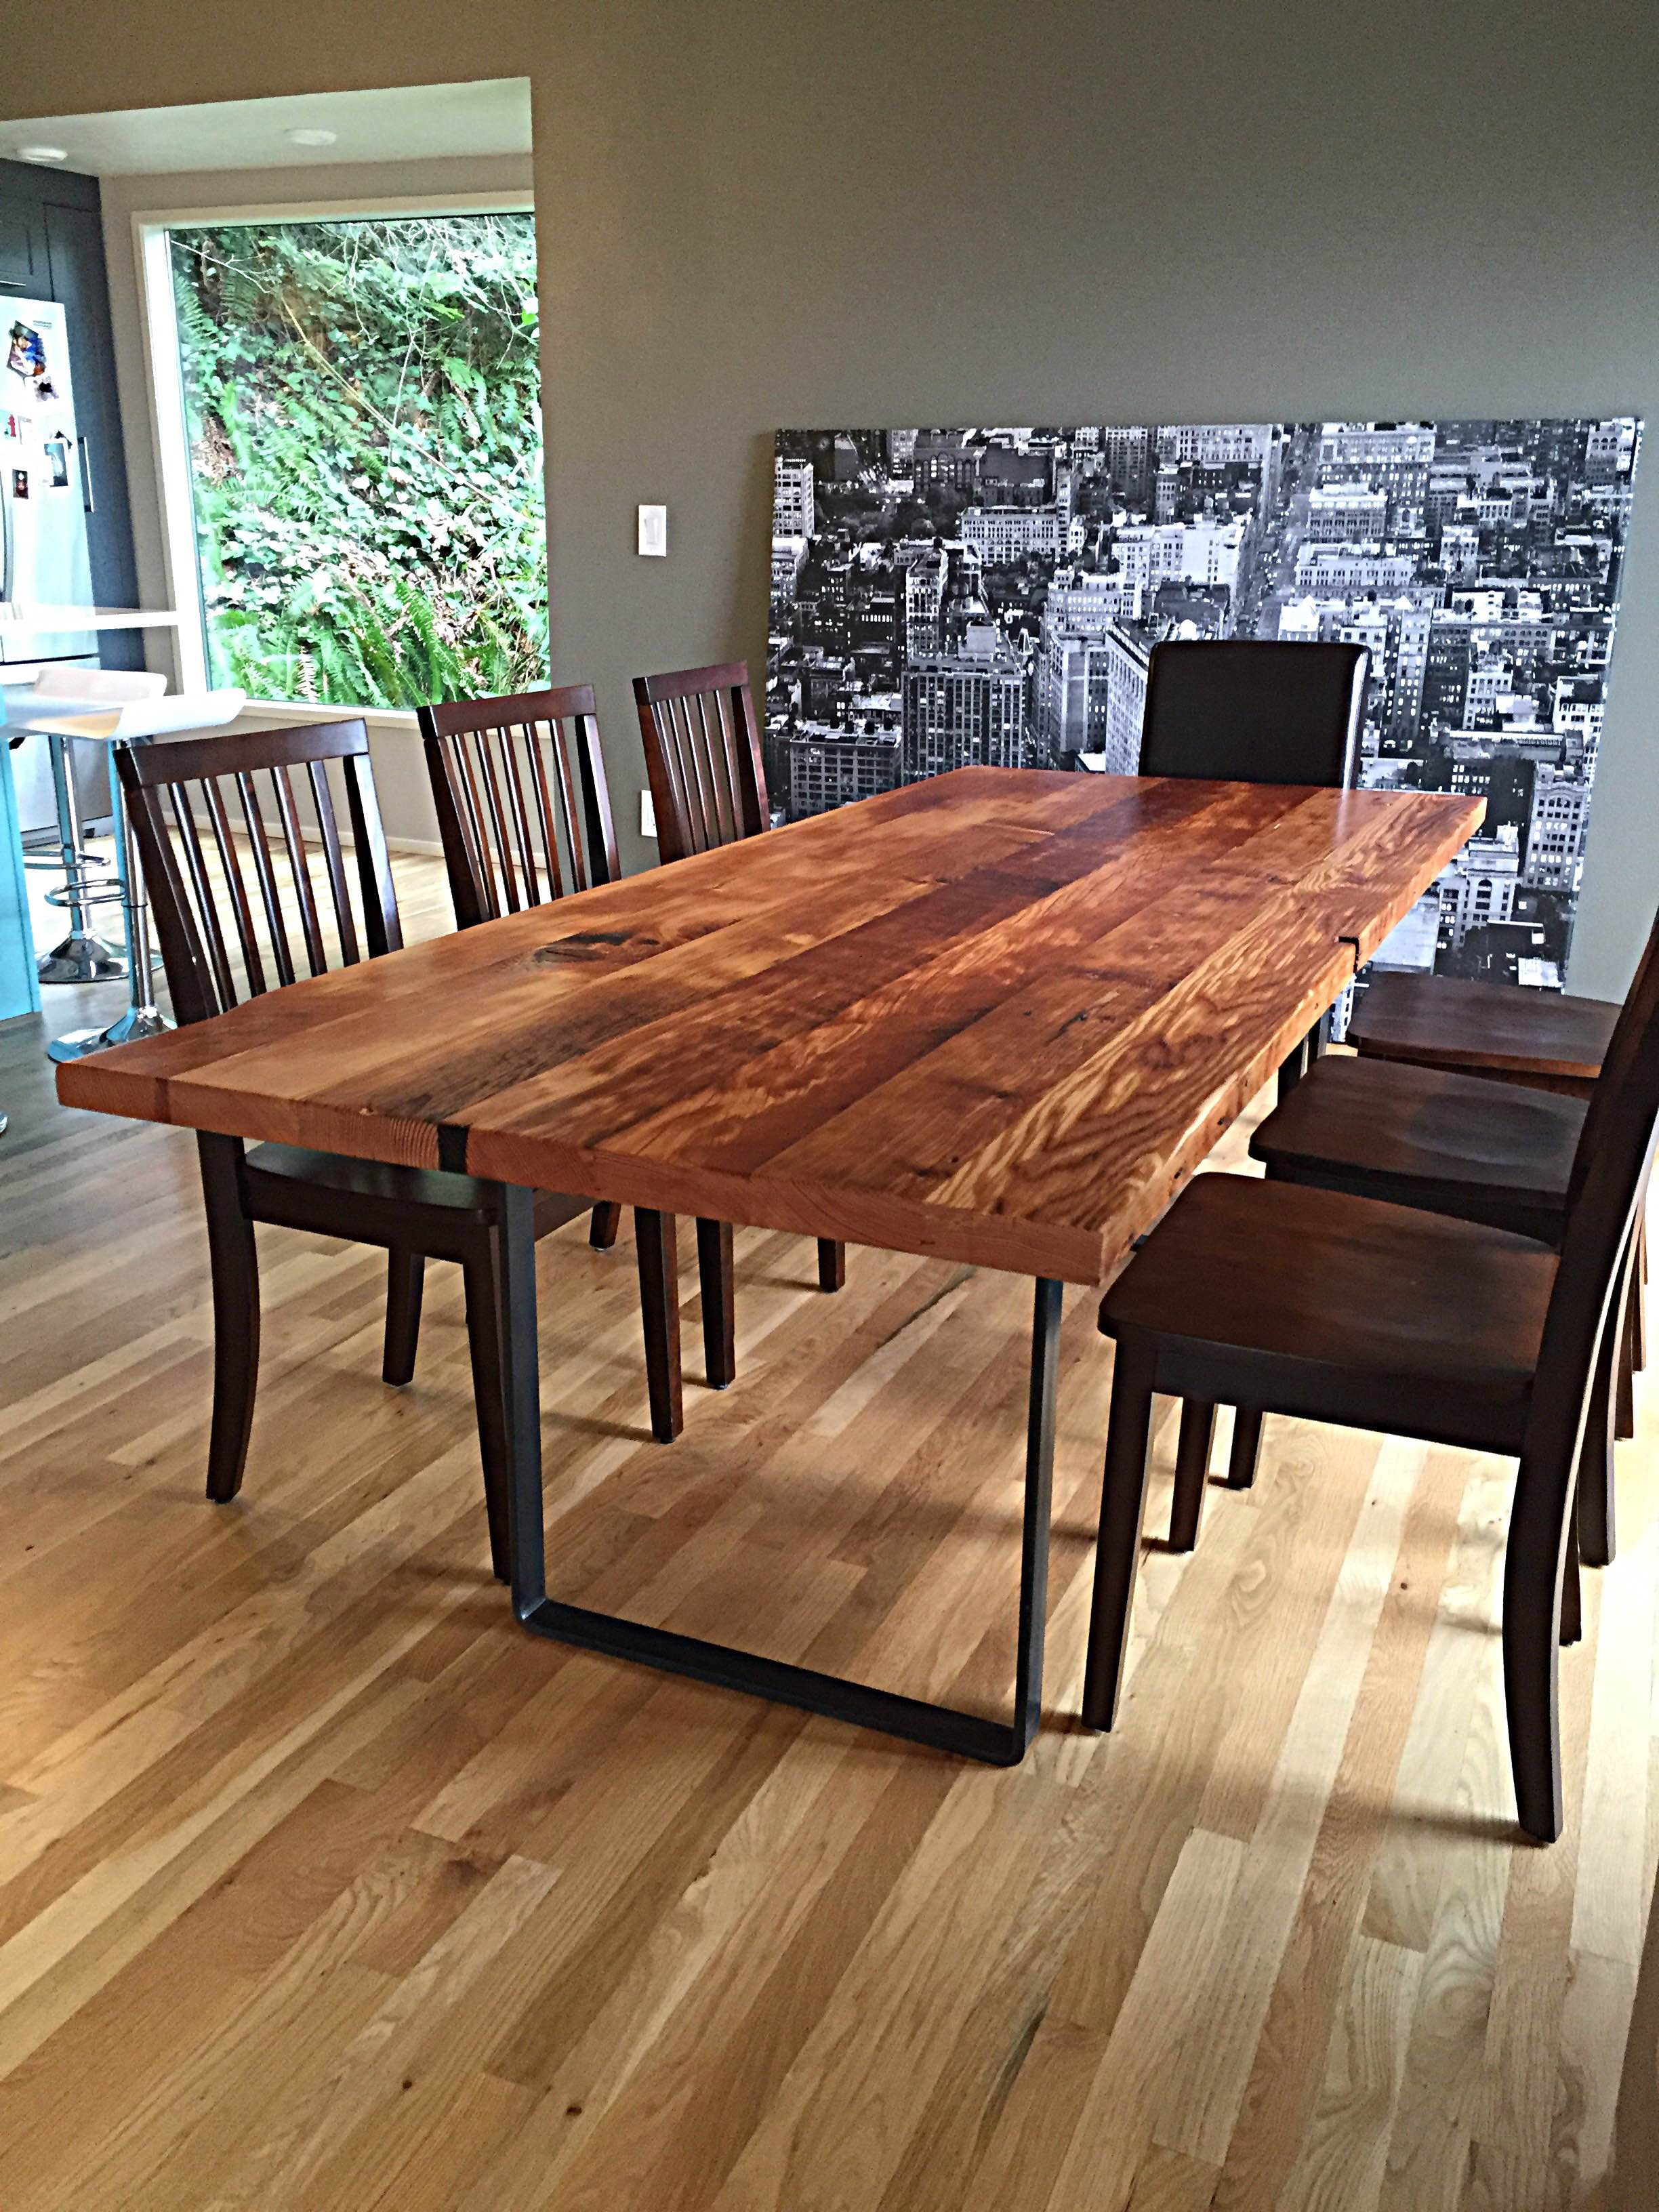 Modular reclaimed wood dining table fremont reclaimed douglas fir dining table - stumptown reclaimed | reclaimed  wood lvlcxjq